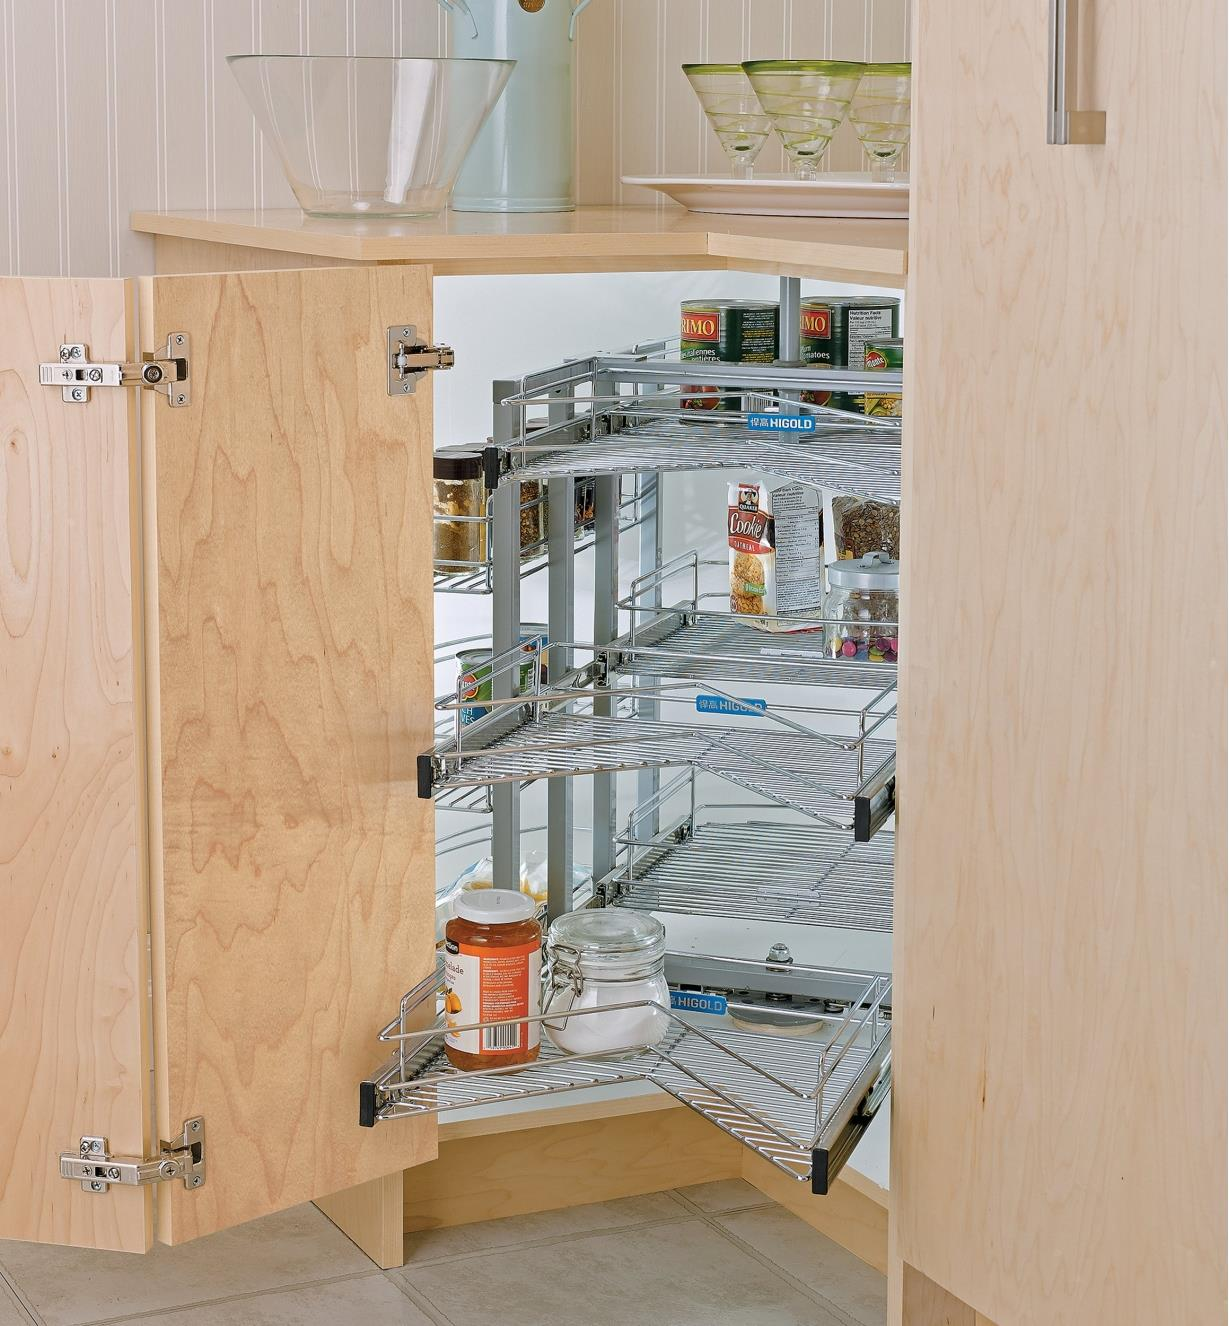 Pull-Out Corner Carousel installed in a cabinet, with the baskets pulled out